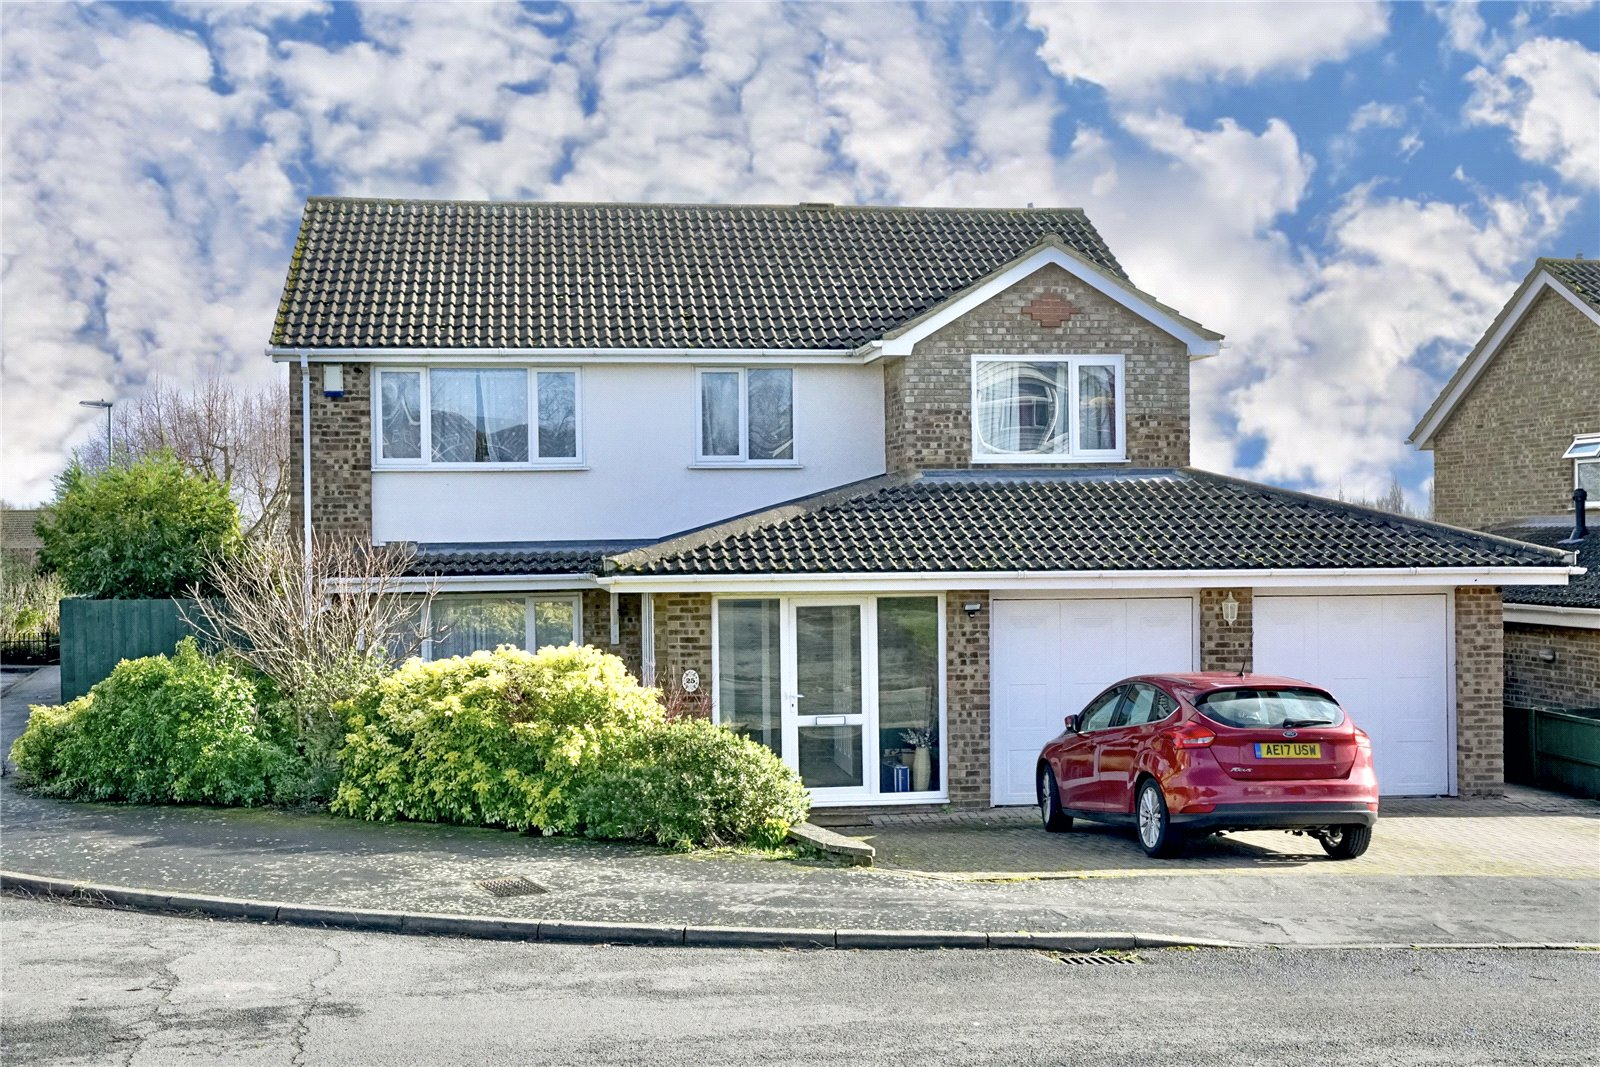 4 bed house for sale in Lowry Road, Eaton Ford  - Property Image 2